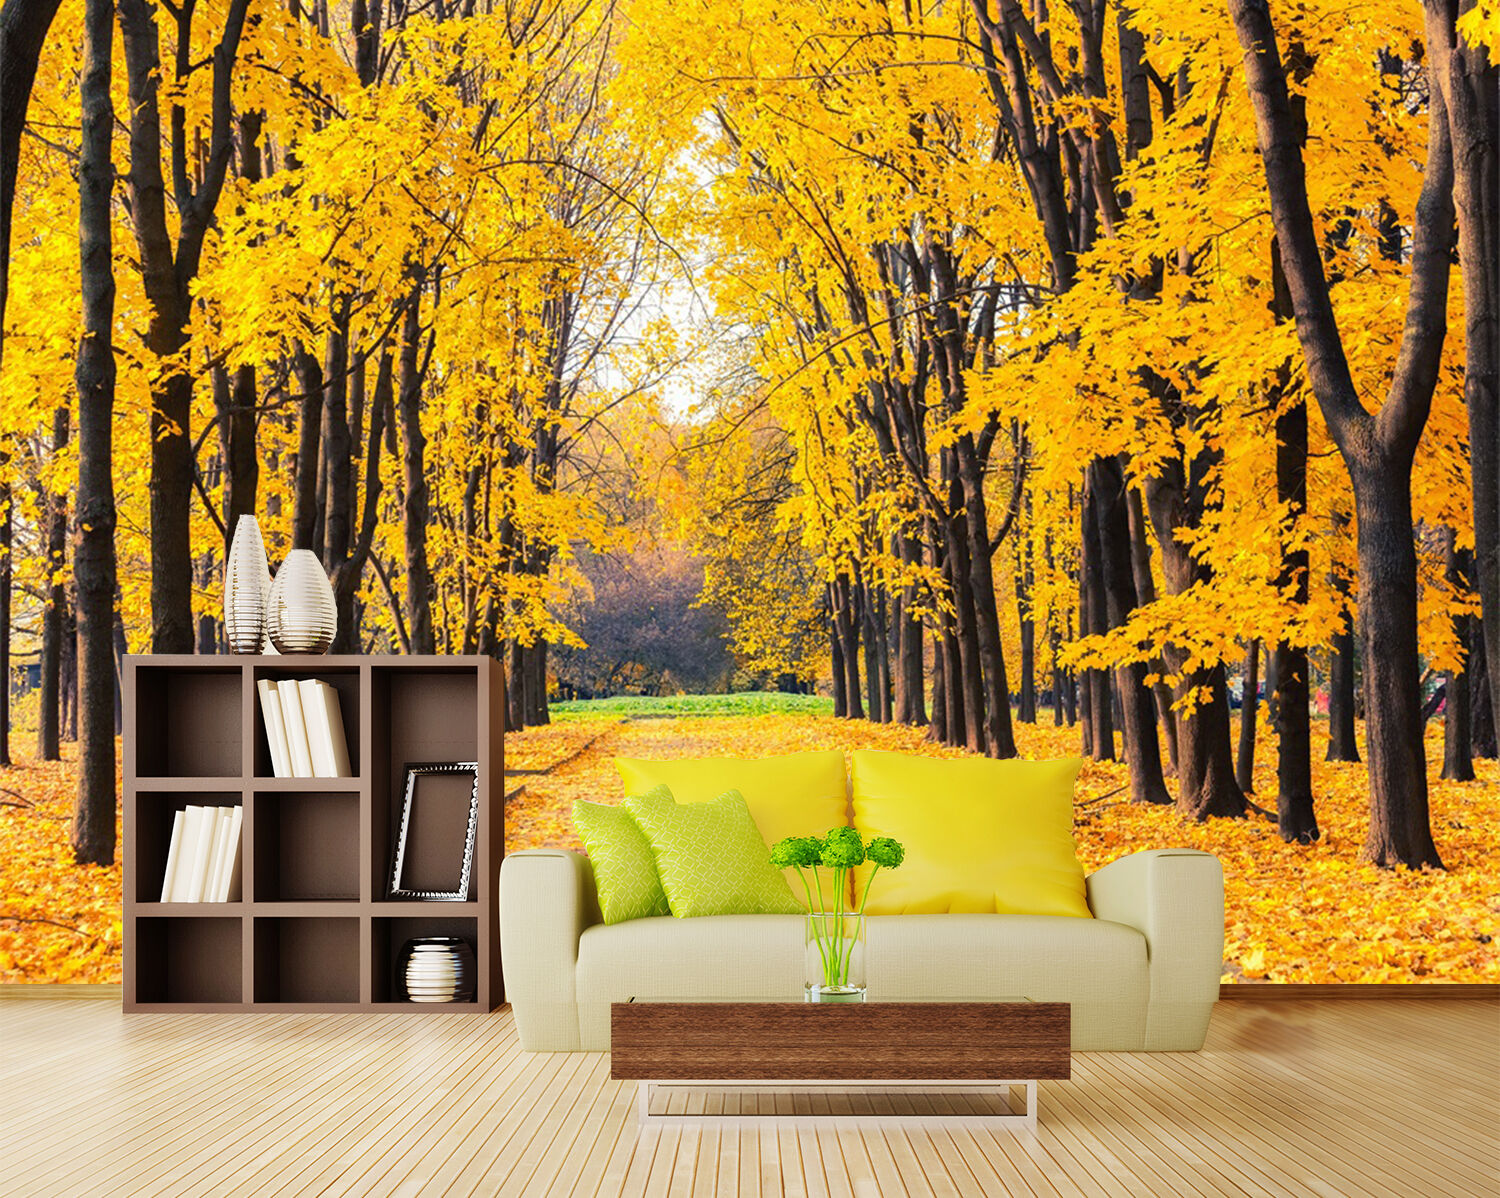 3D Gelb park tree Wall Paper wall Print Decal Wall Deco Indoor wall Mural